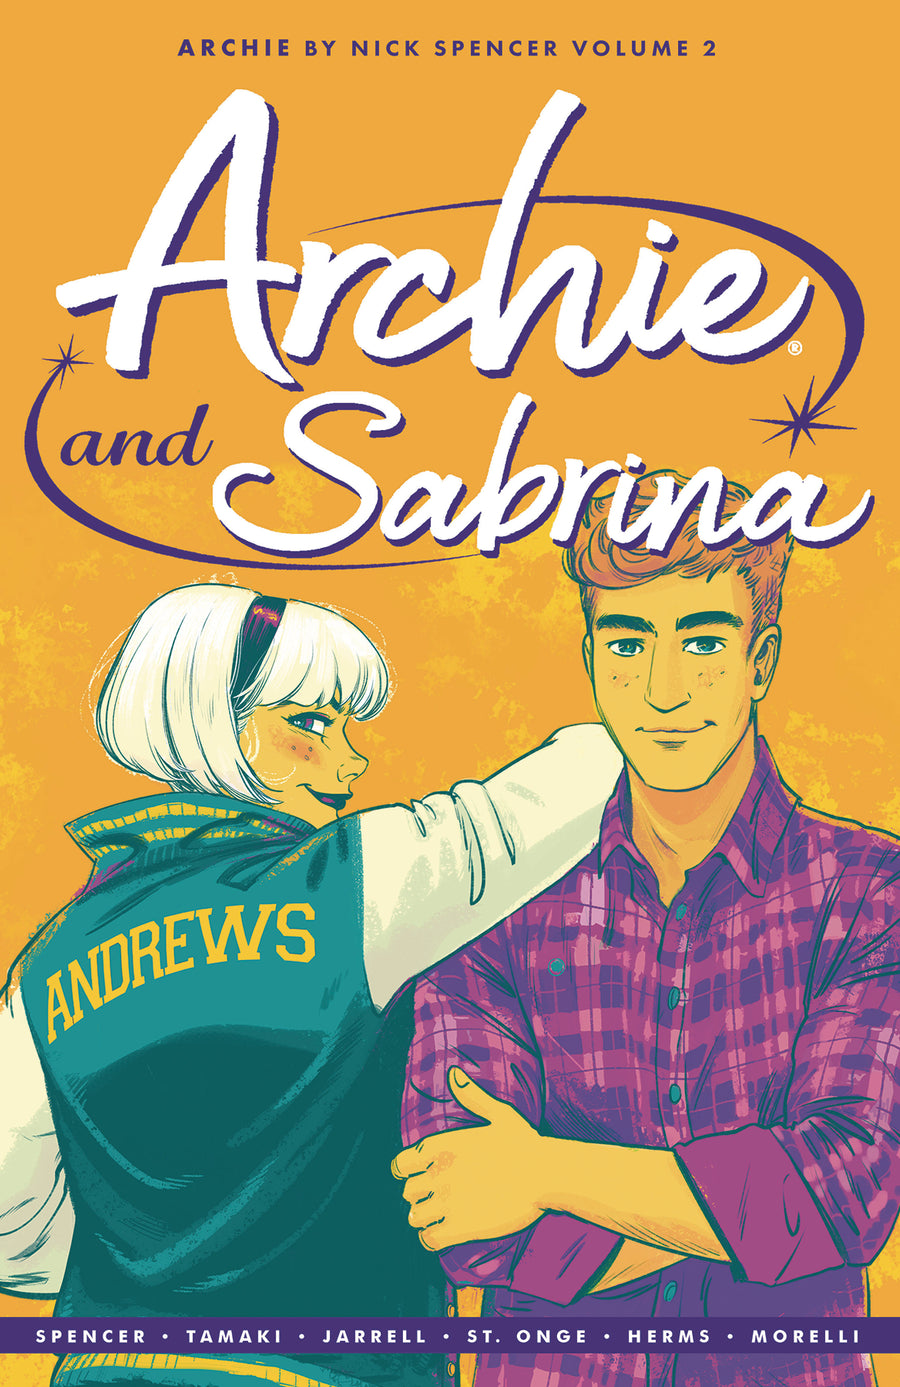 Archie by Nick Spencer Volume 2: Archie and Sabrina